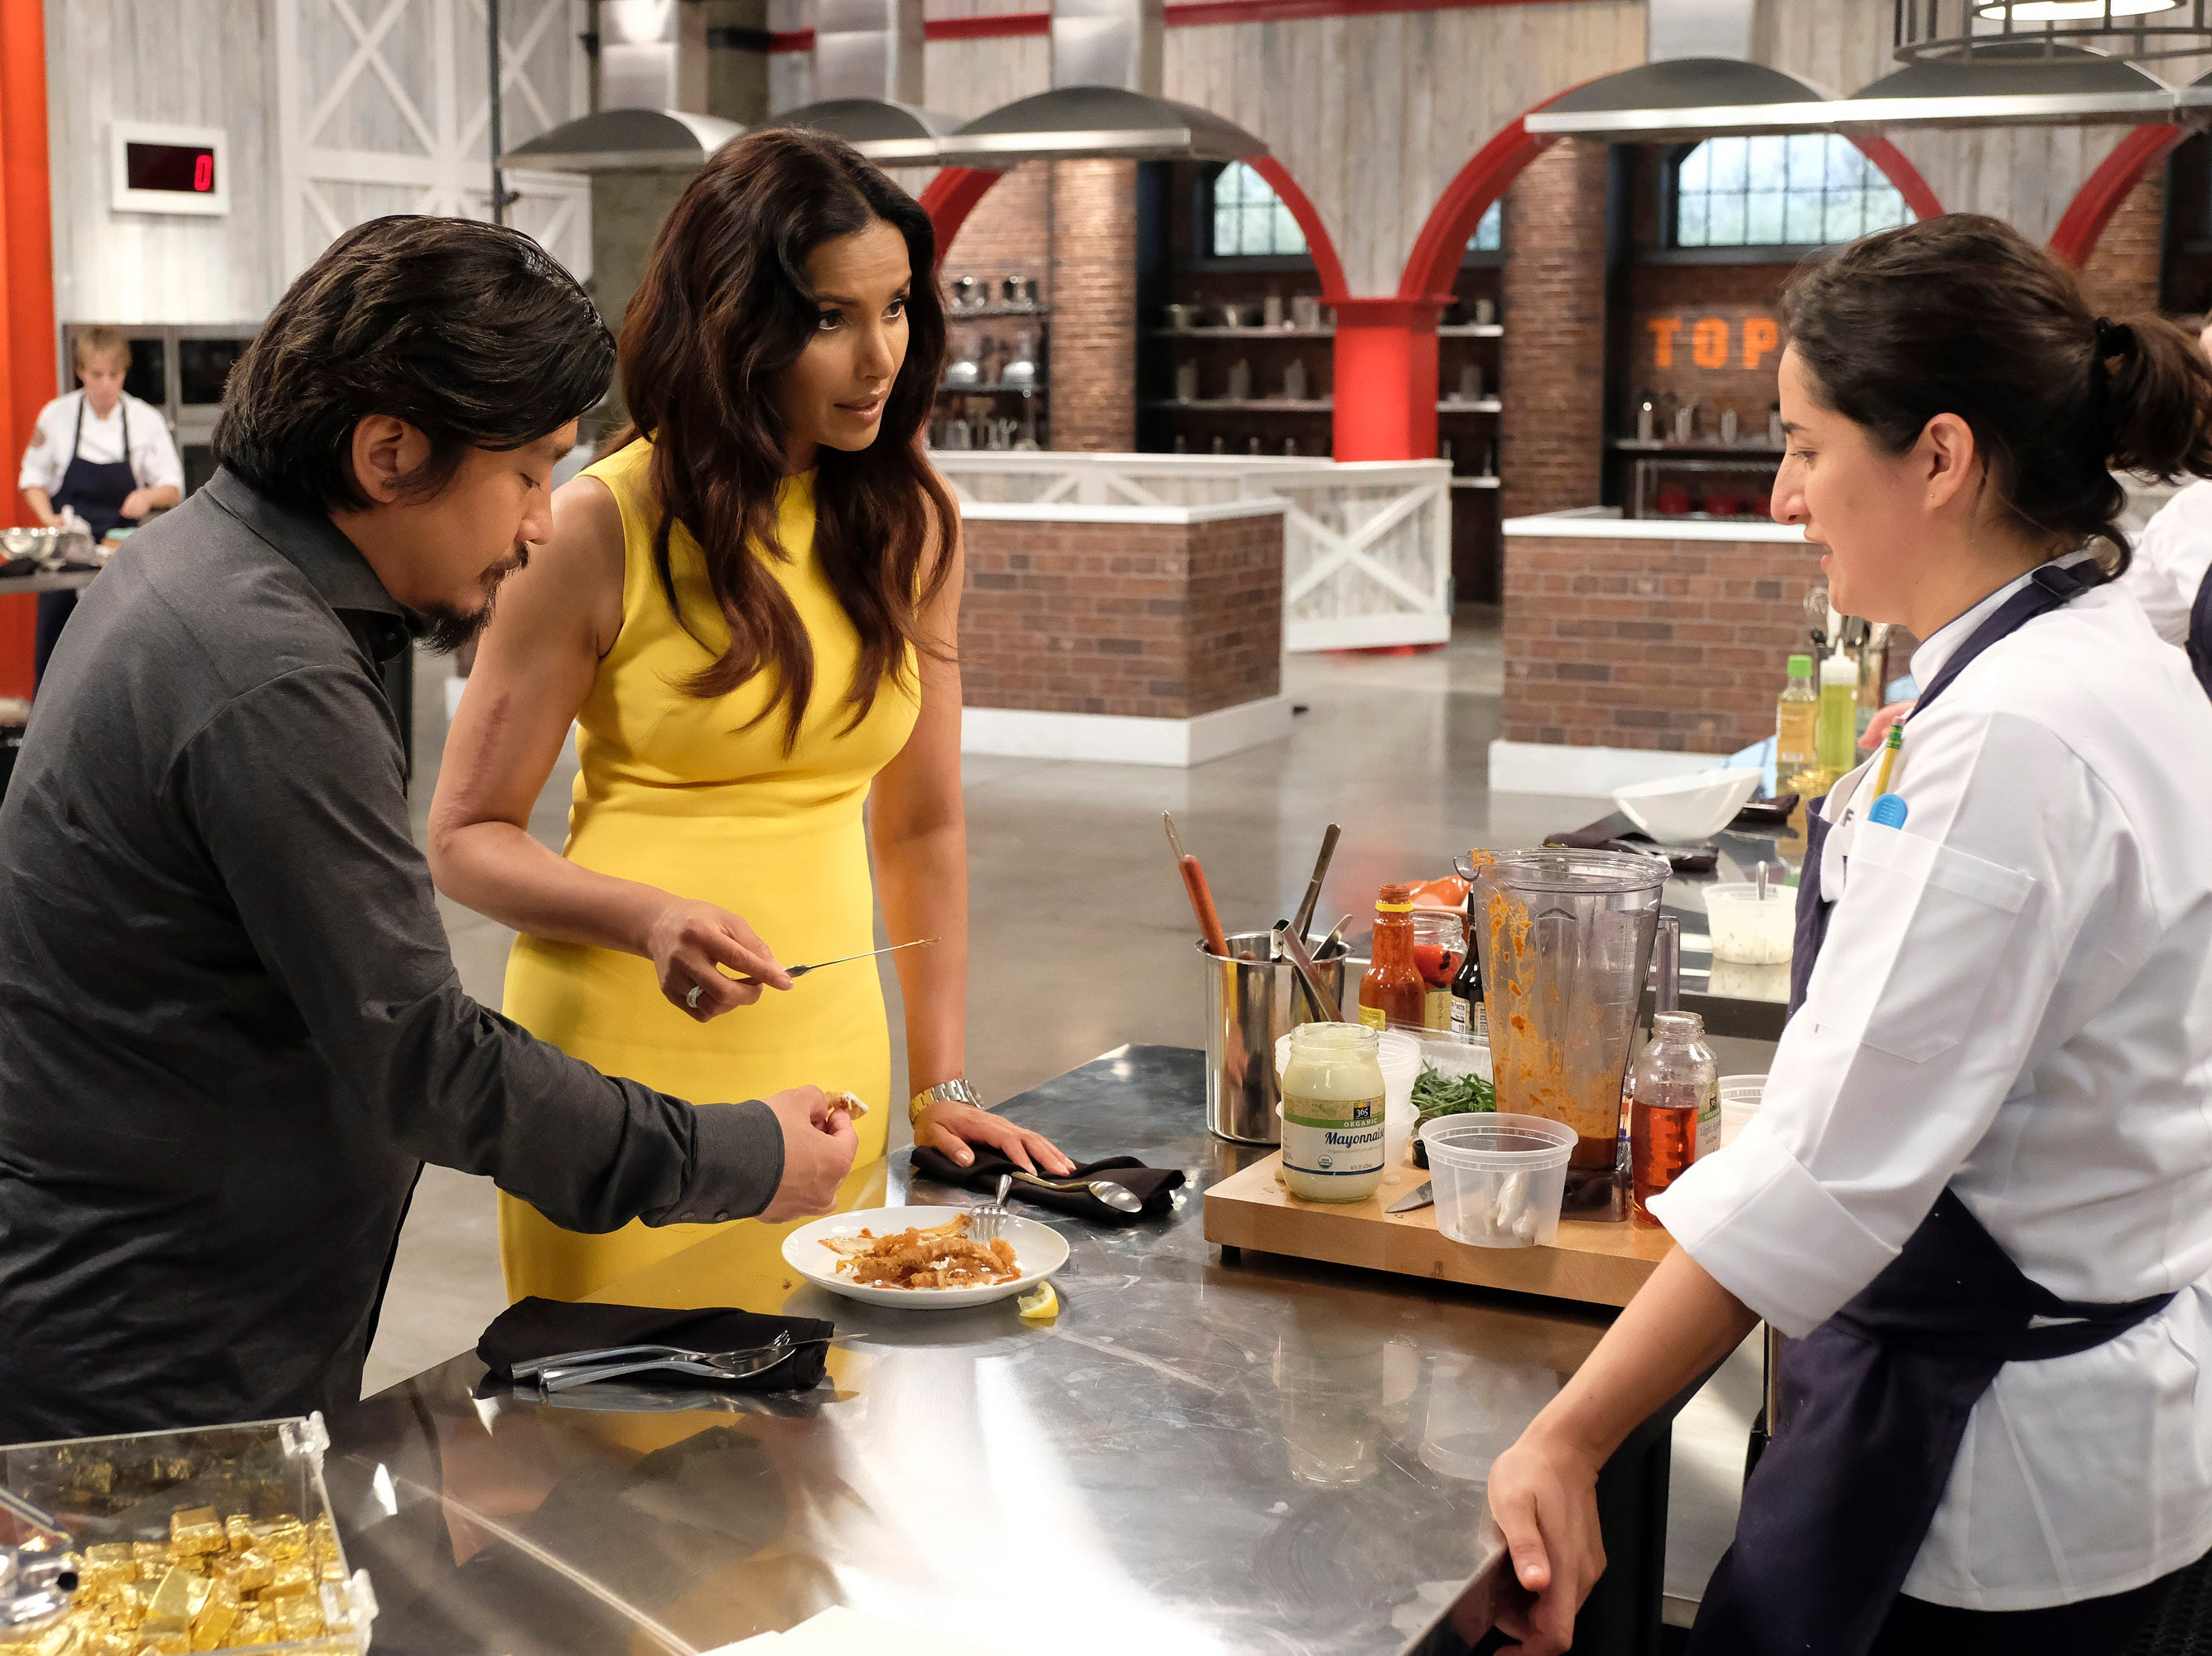 (From left to right): Louisville chef and 'Top Chef' alum Ed Lee, and Host Padma Lakshmi taste Michelle Minori's dish on episode 10 of Bravo's 'Top Chef: Kentucky' season.